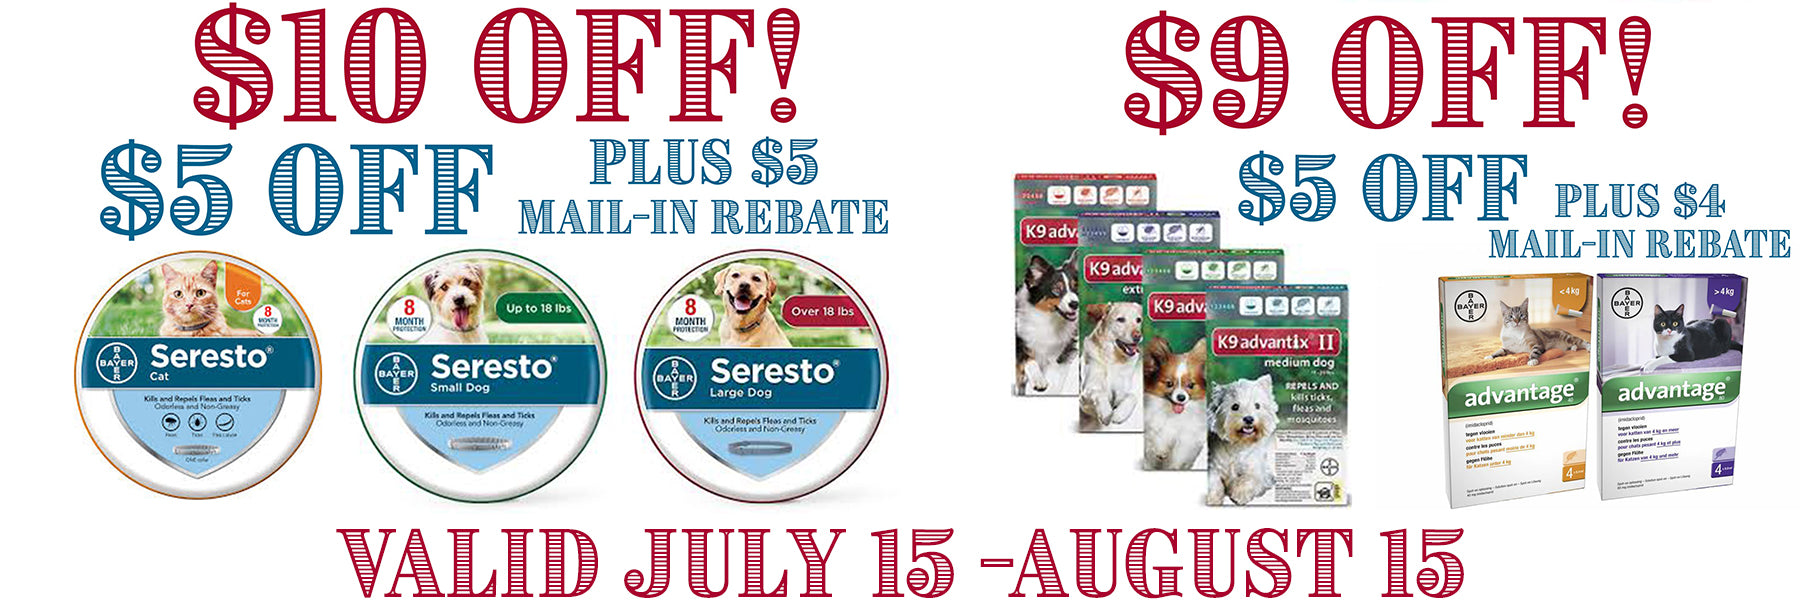 bayer july special sale